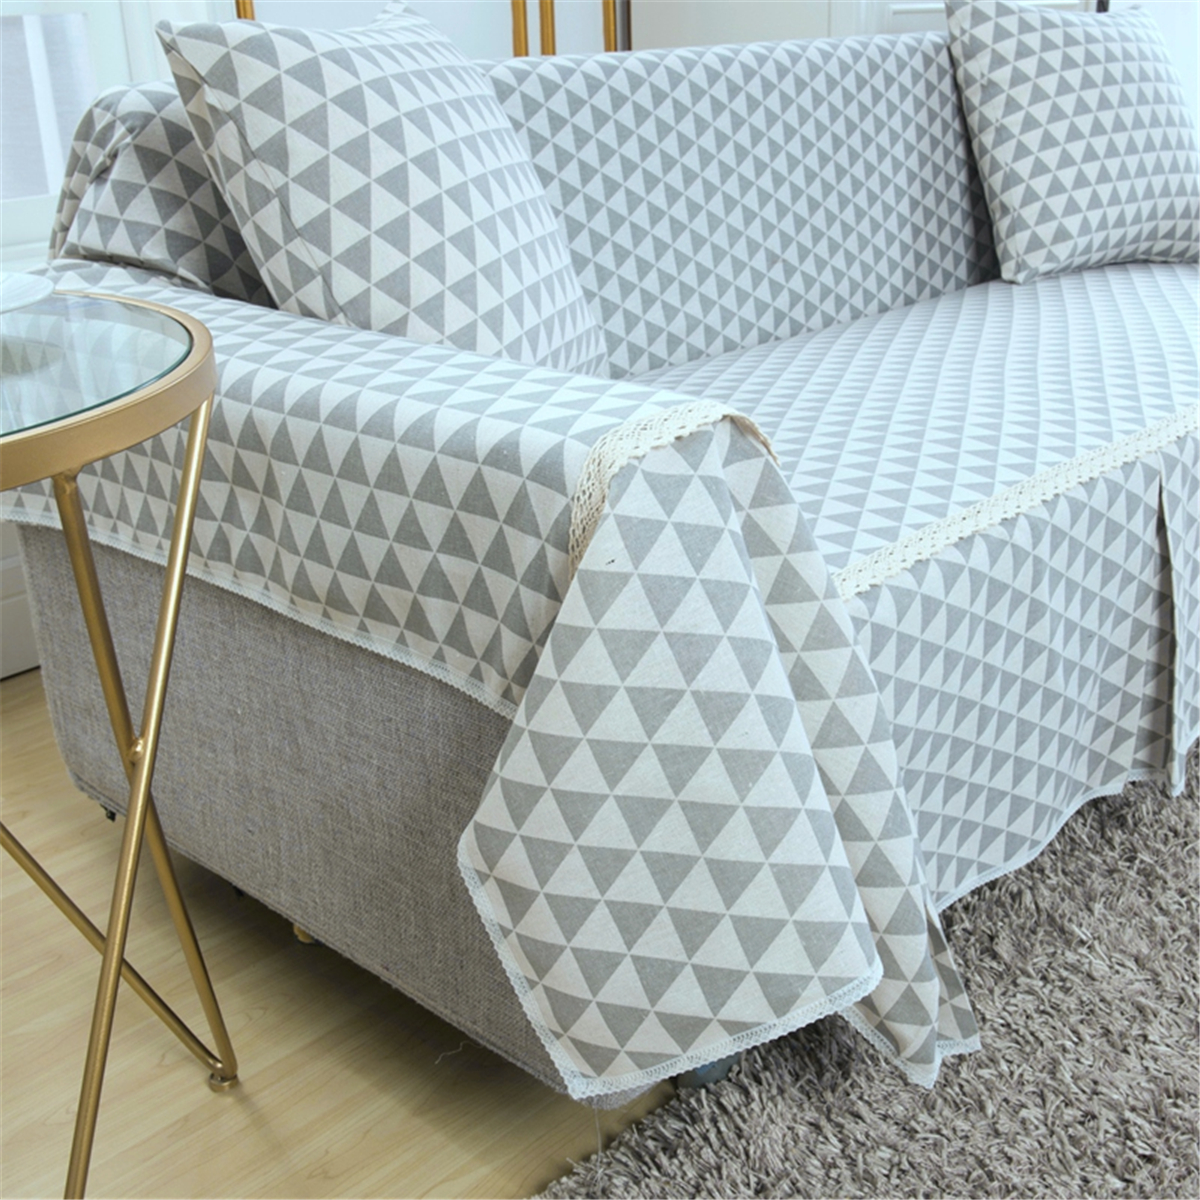 Sensational 1 2 3 Seater Sofa Chair Covers Cotton Linen Furniture Protector Couch Towel Skirt Thick Fabric Universal Sofa Towel Cover Machost Co Dining Chair Design Ideas Machostcouk